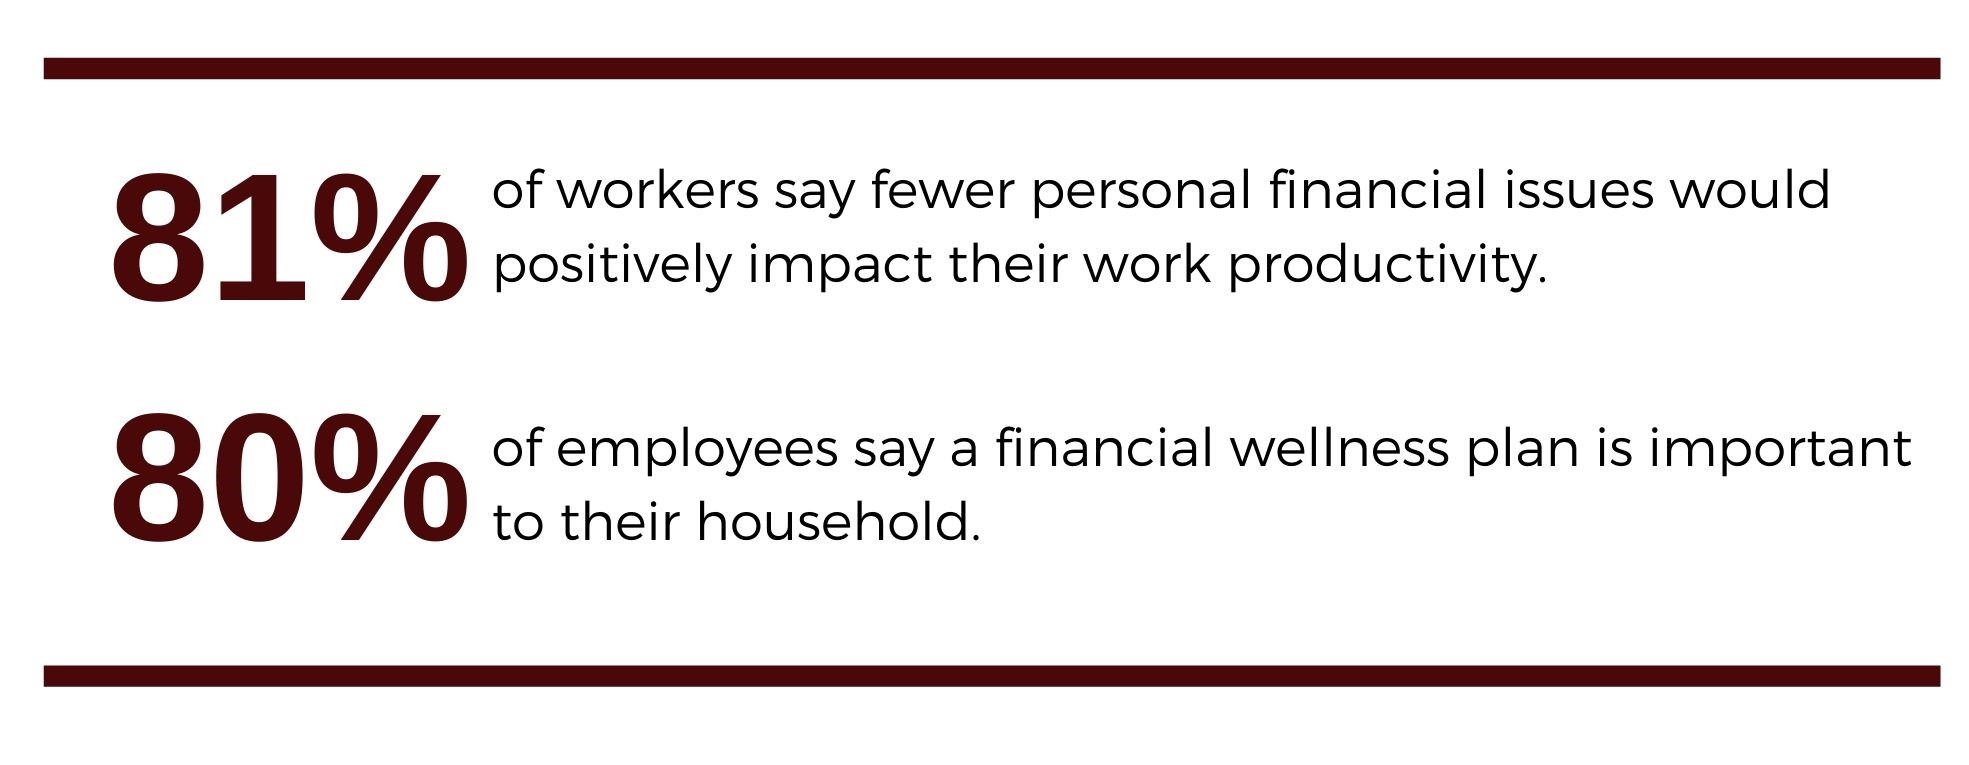 81% of workers say fewer personal financial issues would positively impact their work productivity. 80% of employees say a financial wellness plan is important to their household.